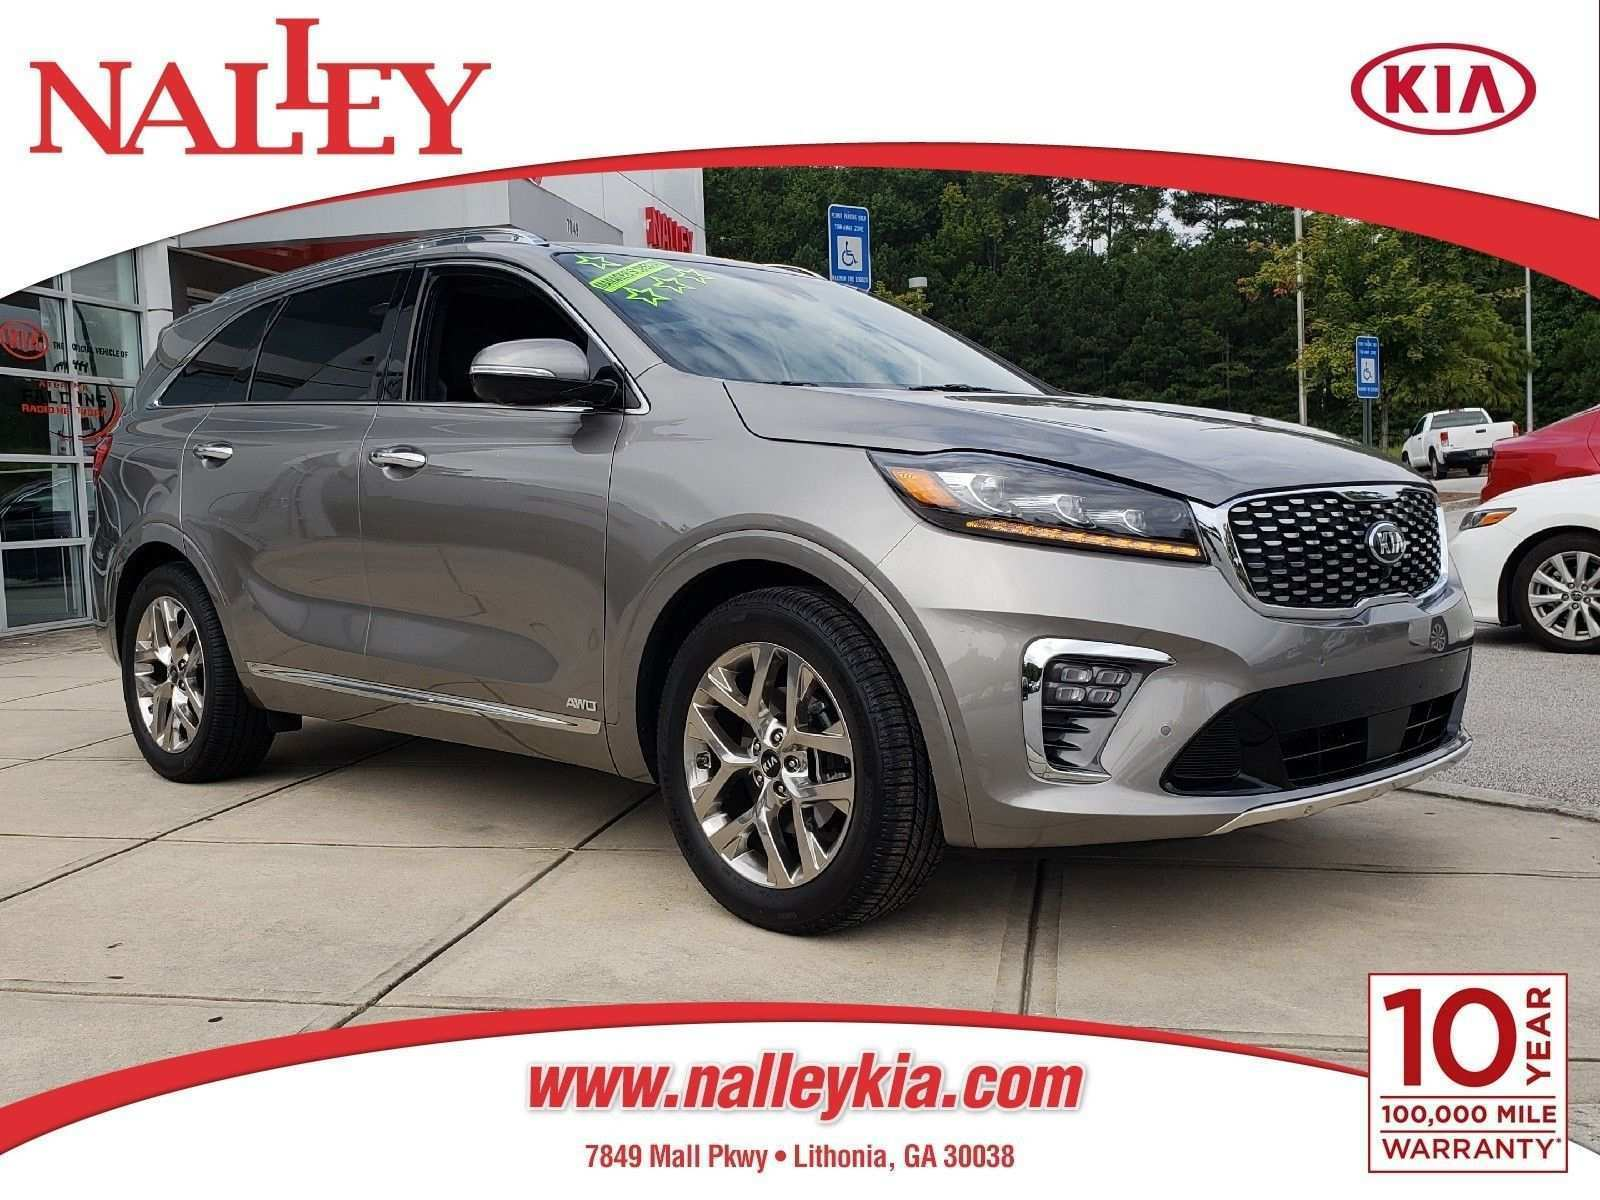 63 New 2019 Kia Sorento Warranty New Concept Engine for 2019 Kia Sorento Warranty New Concept